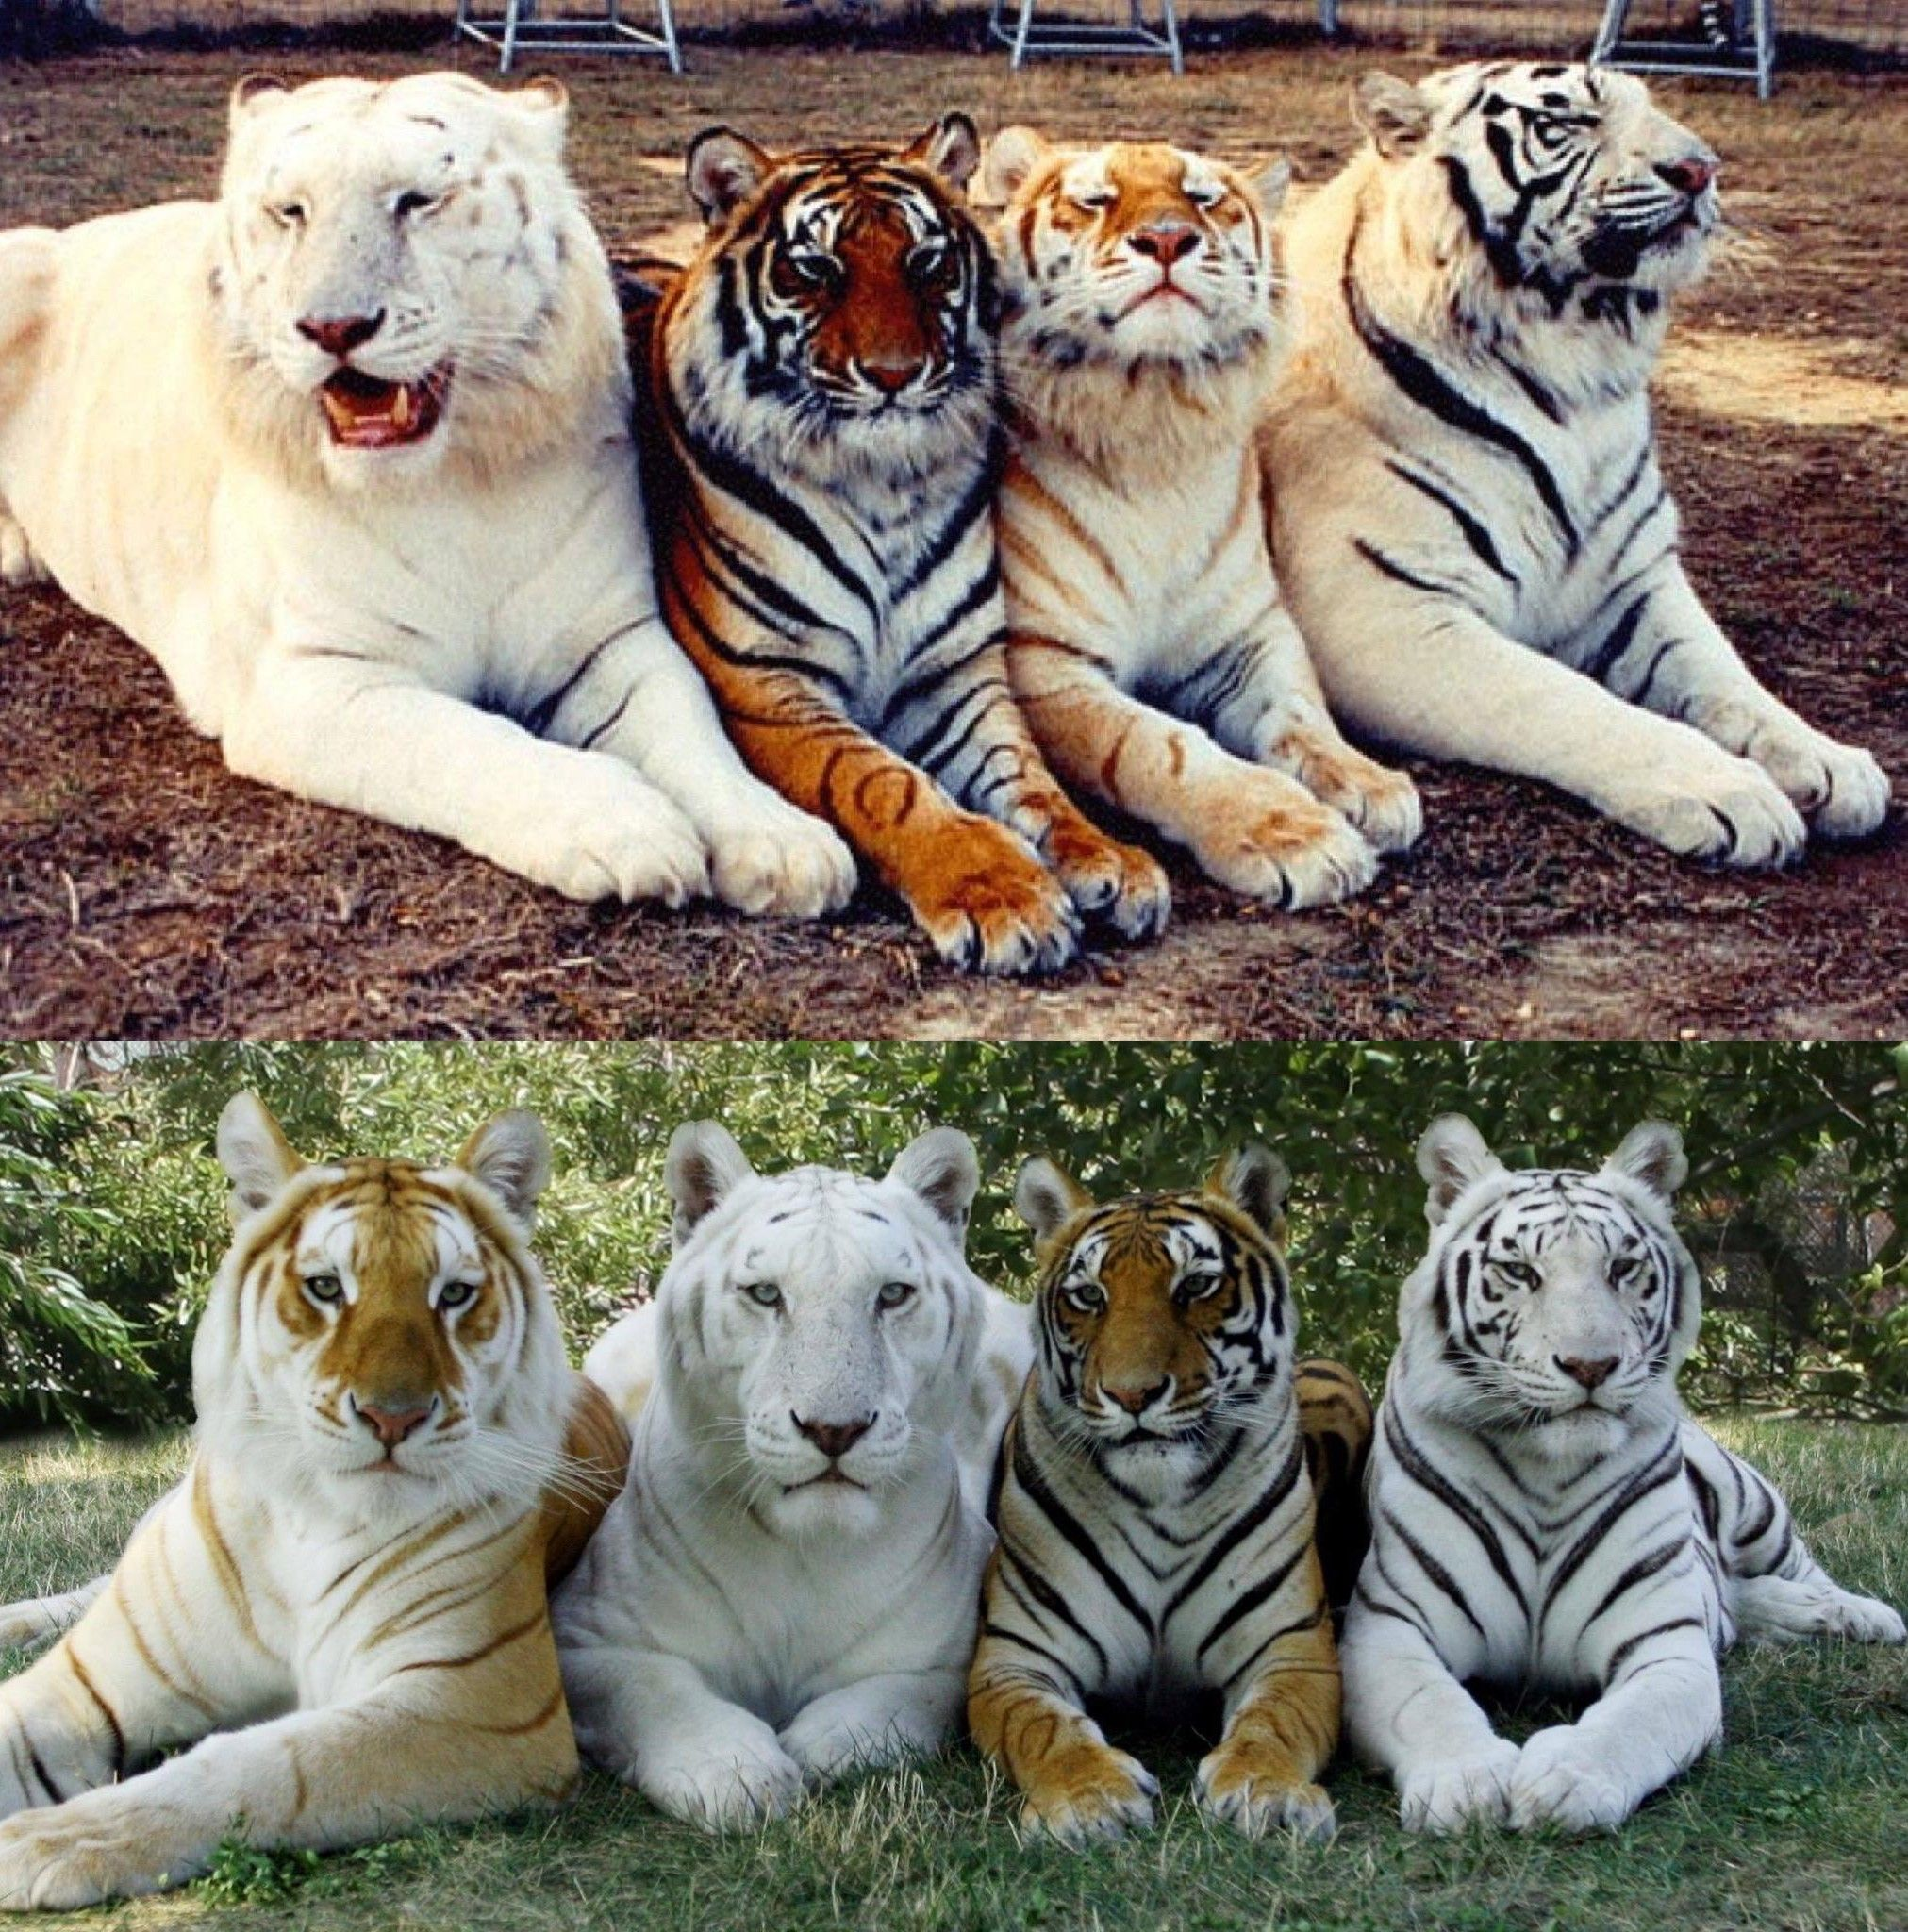 Pin by Tony Toranza on tigers in 2020 Animals, Pictures